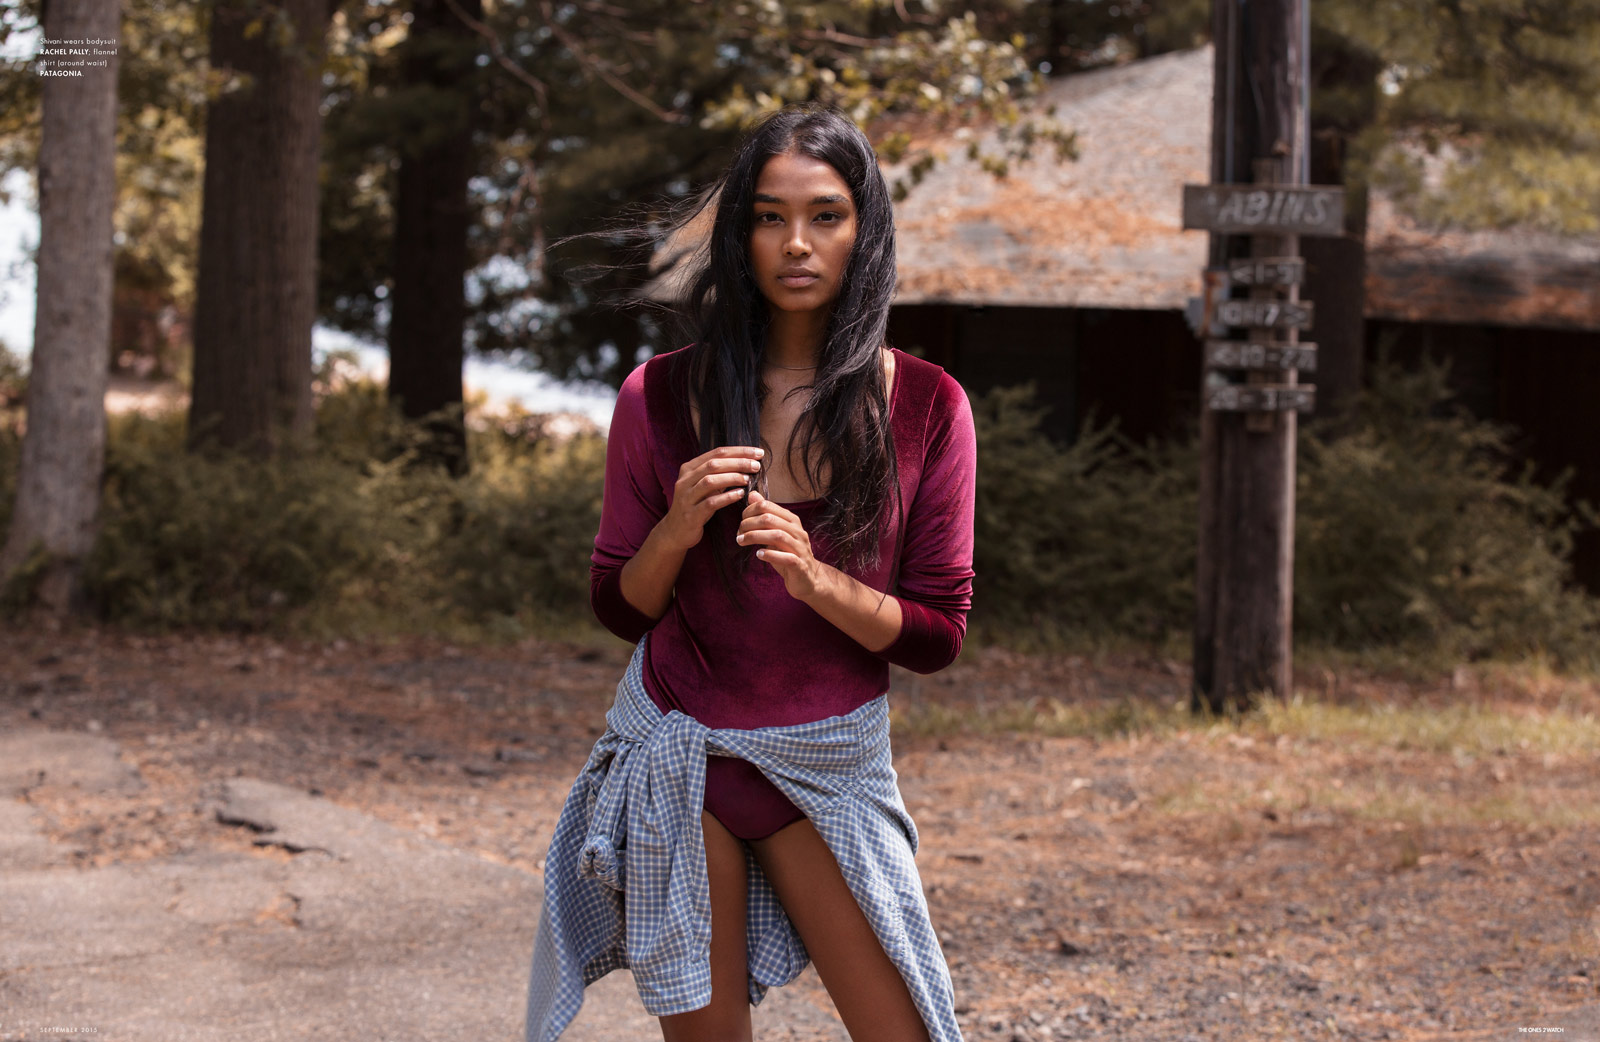 Shivani, shot by Lee O'Connor, styled by Bettina Bati, hair by Bennett Grey, makeup by Shawnte Alexander